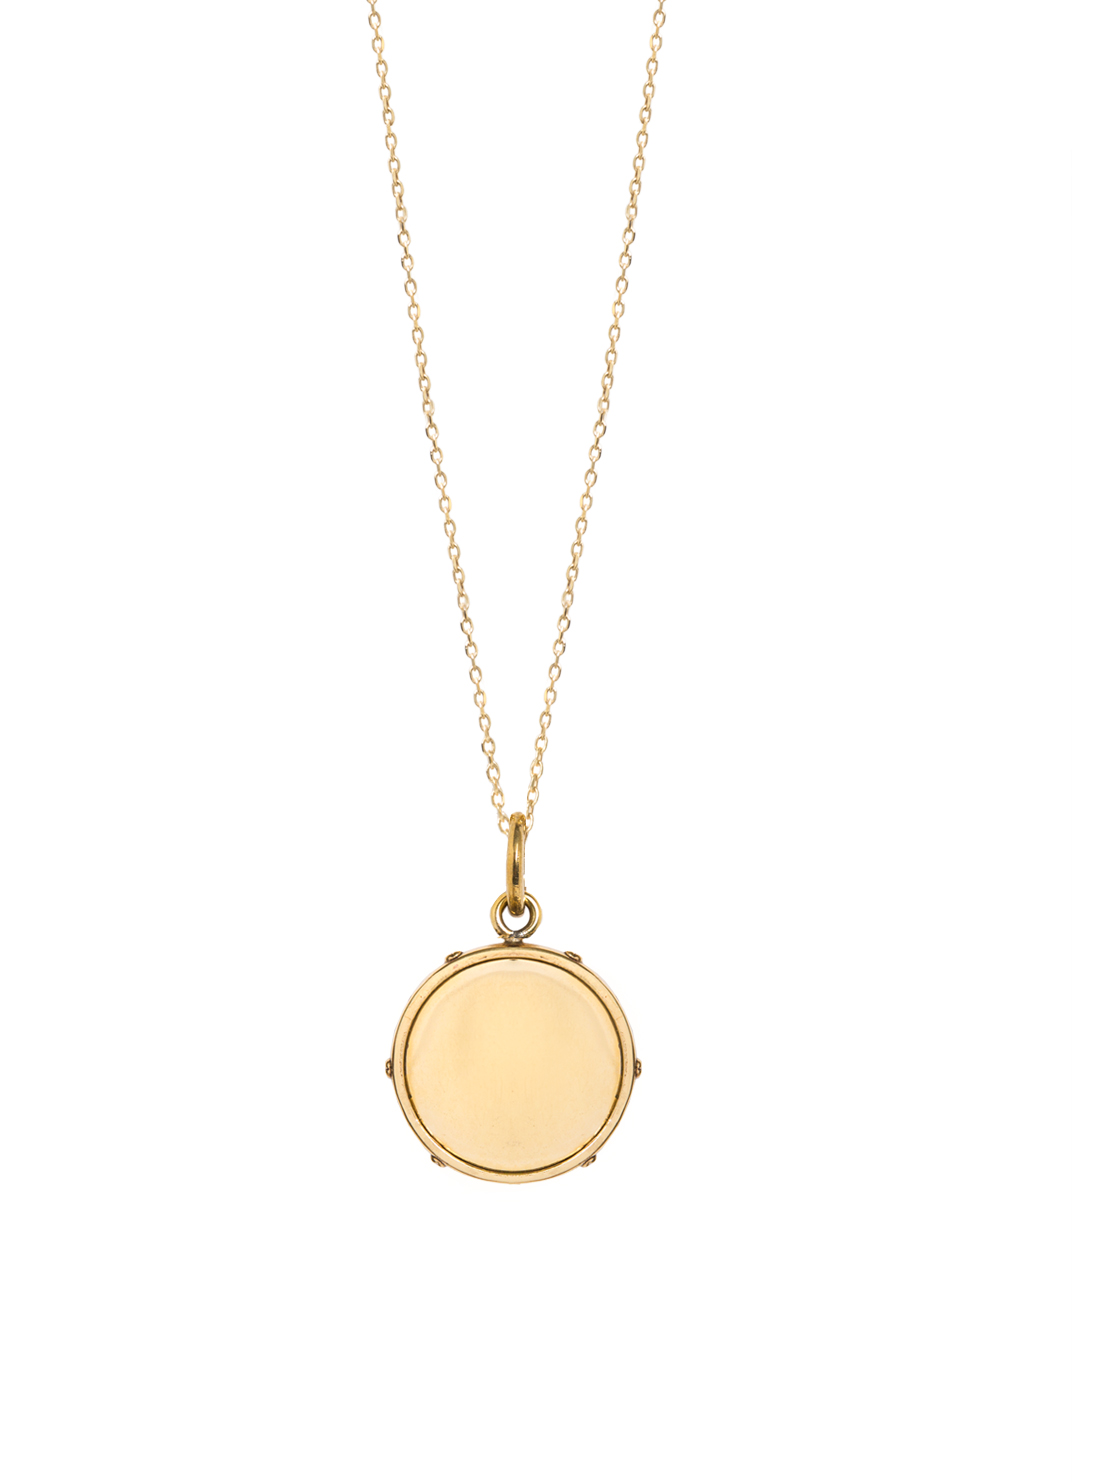 Medium Gold Disc On Trace Chain